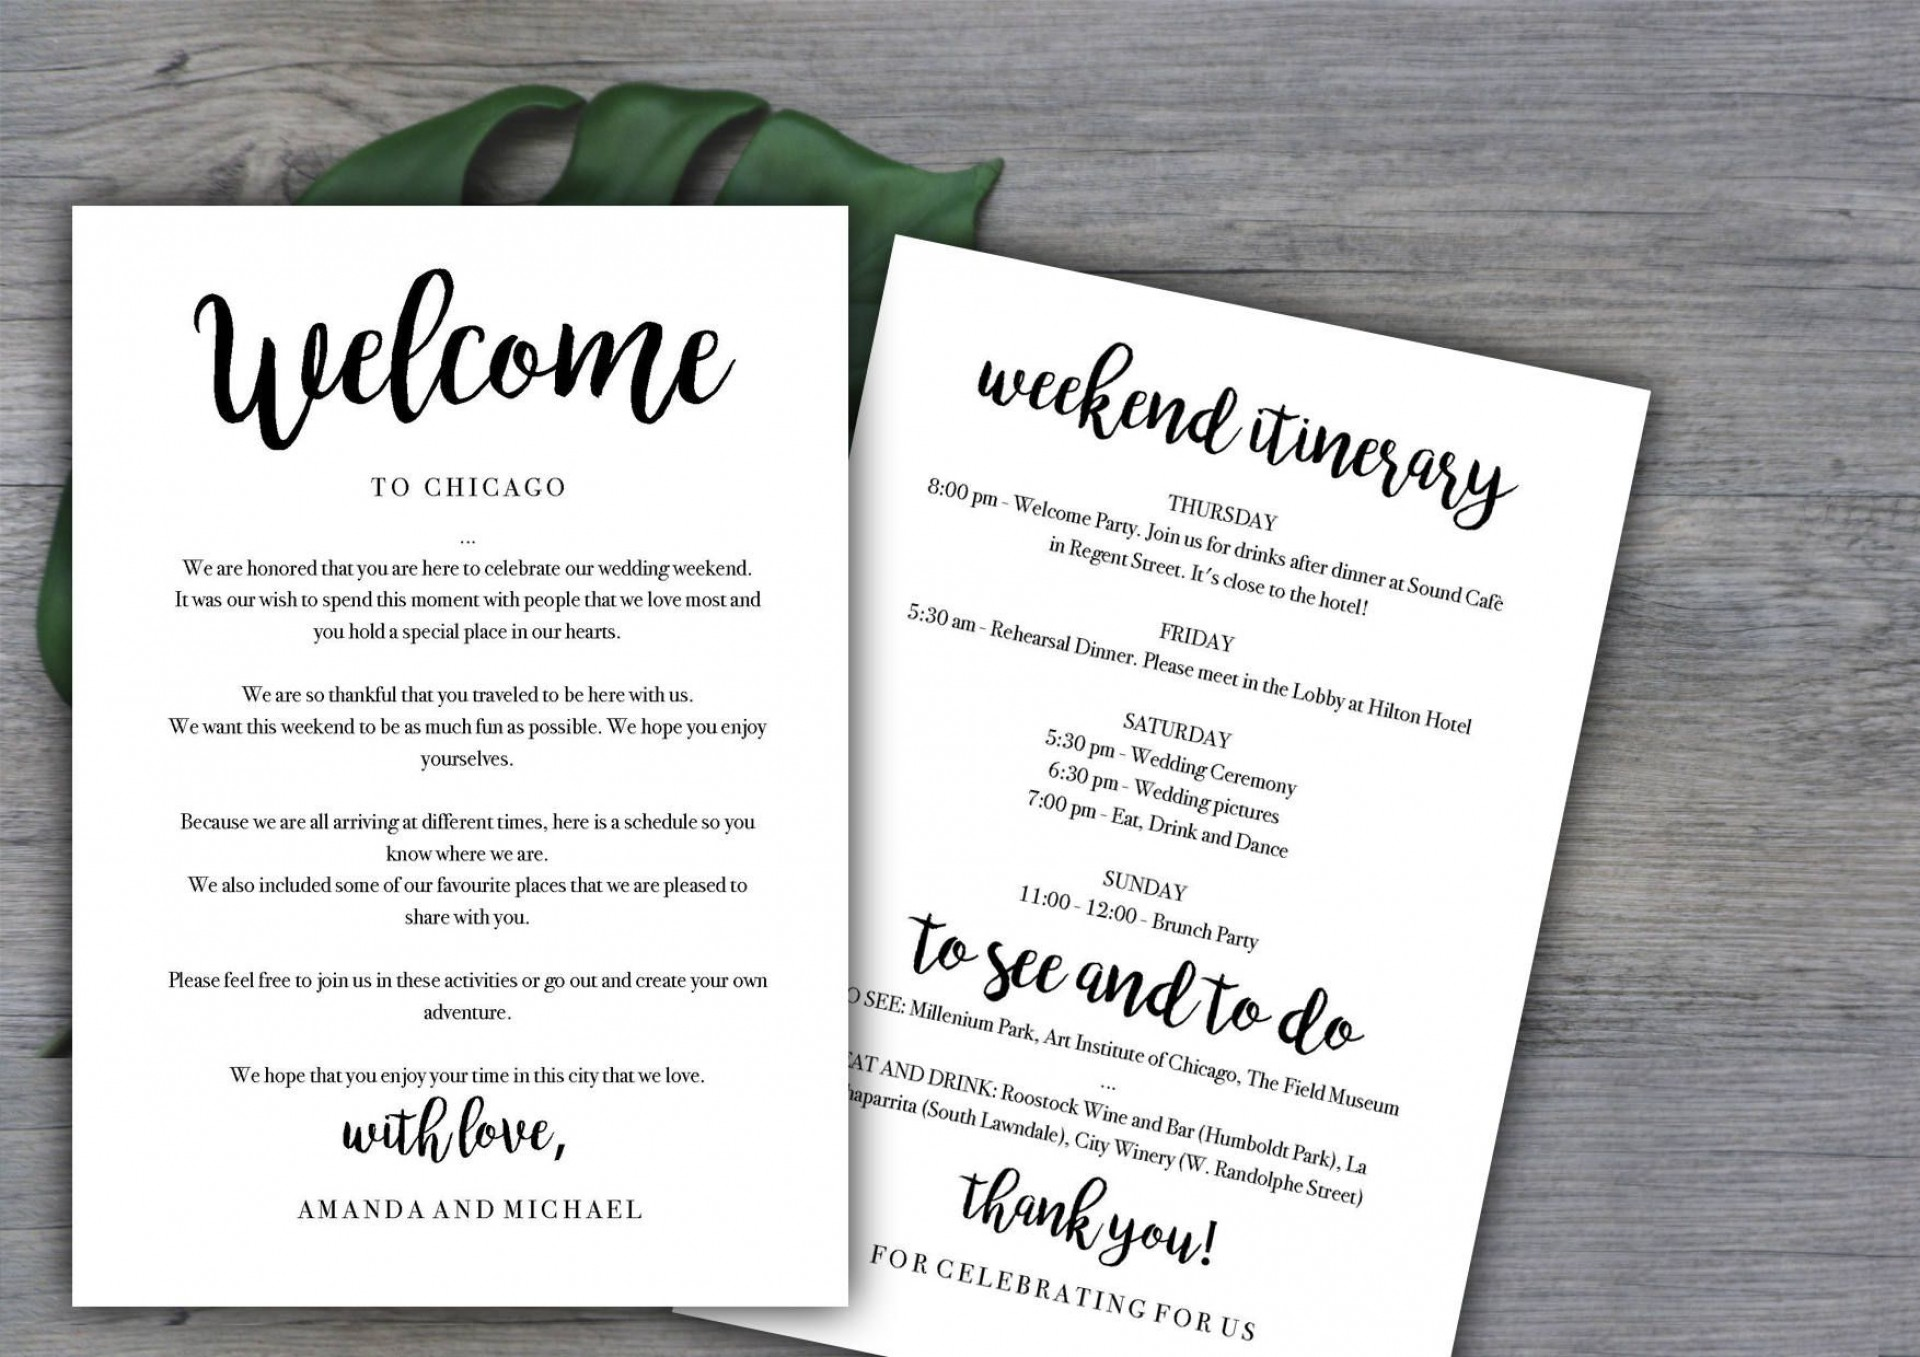 007 Fascinating Wedding Welcome Bag Letter Template Free High Def 1920